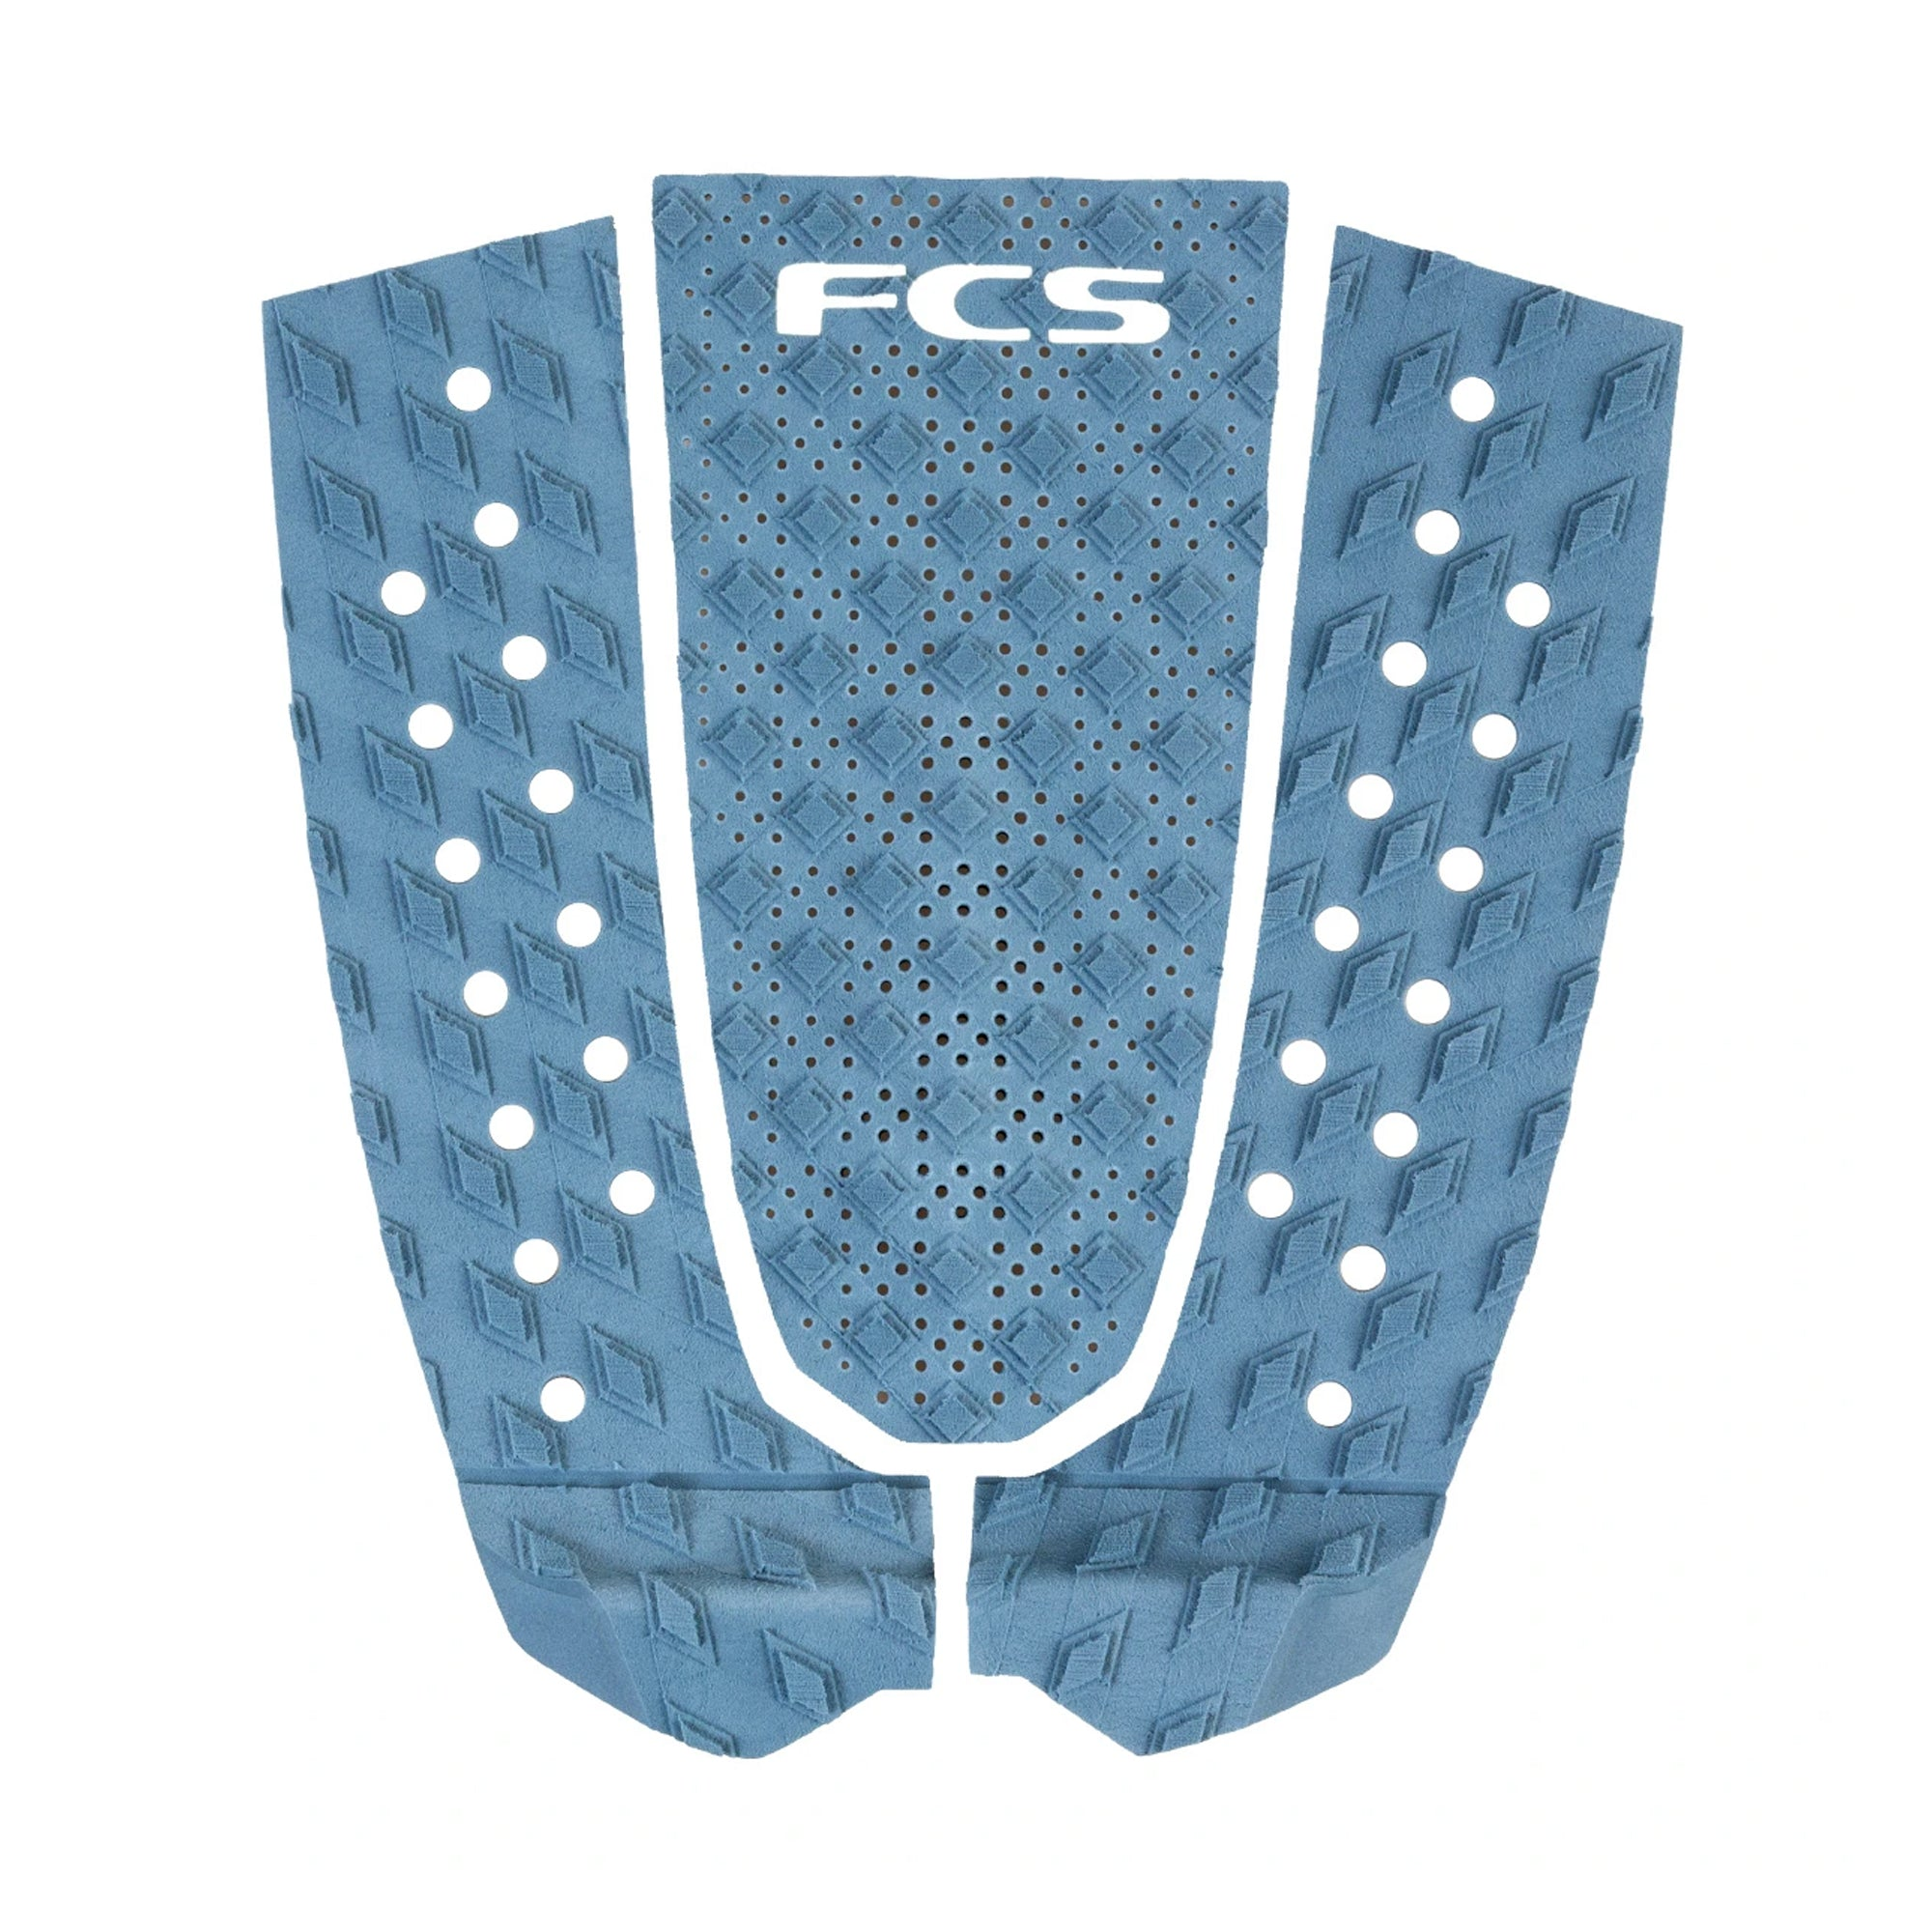 FCS T-3 Essential Series Flat Traction Pad - Dusty Blue